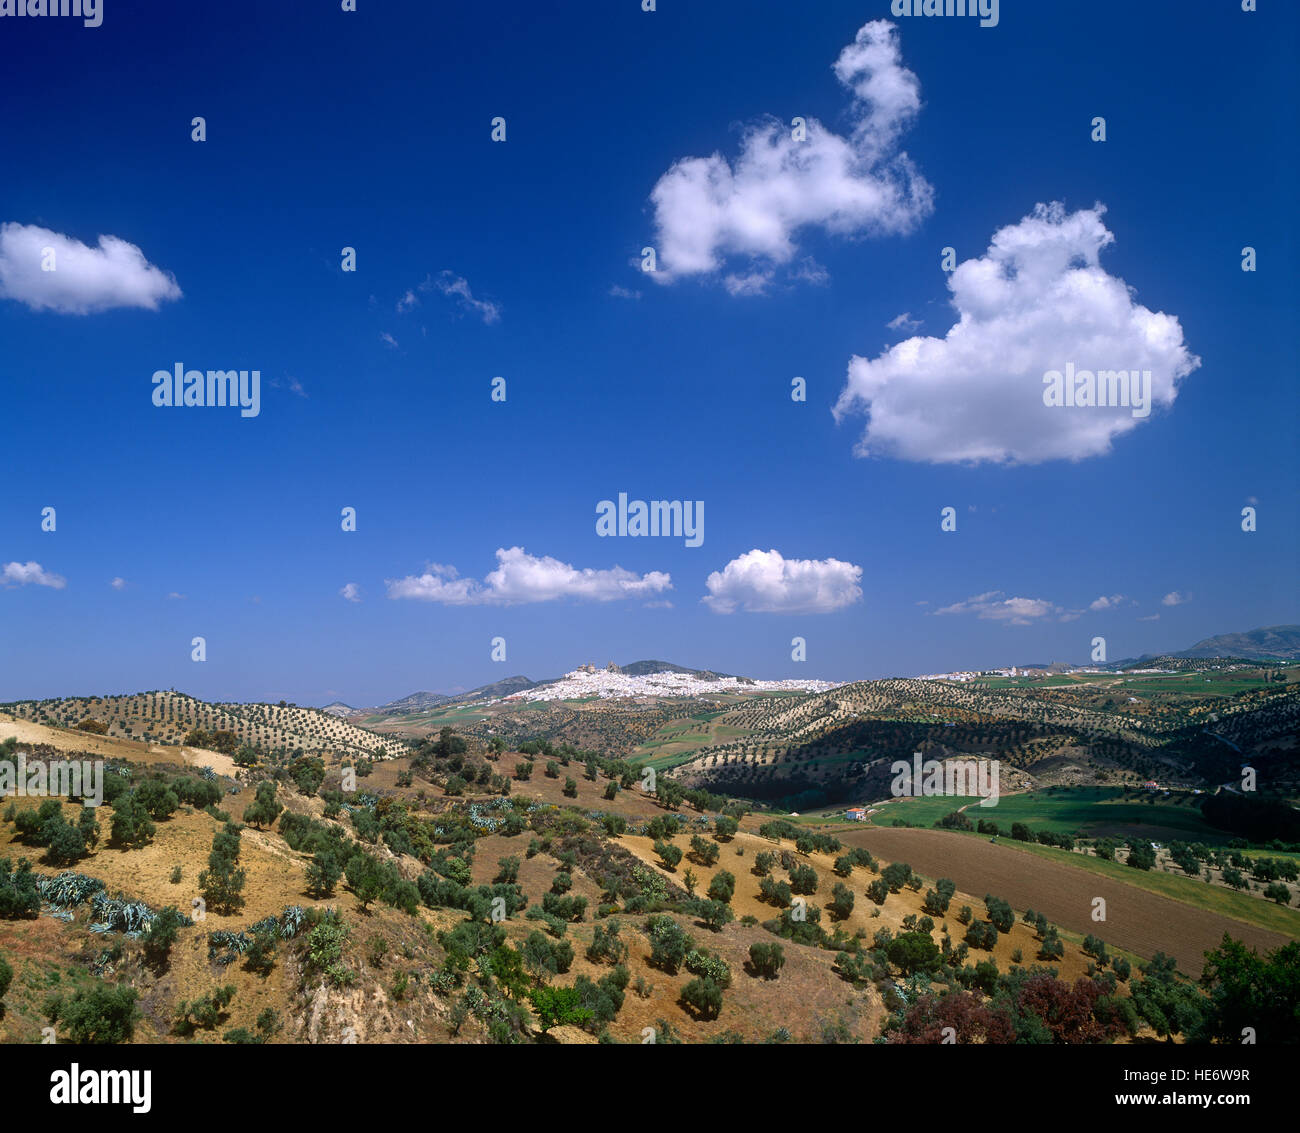 Andalucian landscape, White village of Olvera in the distance, near Malaga, Spain - Stock Image